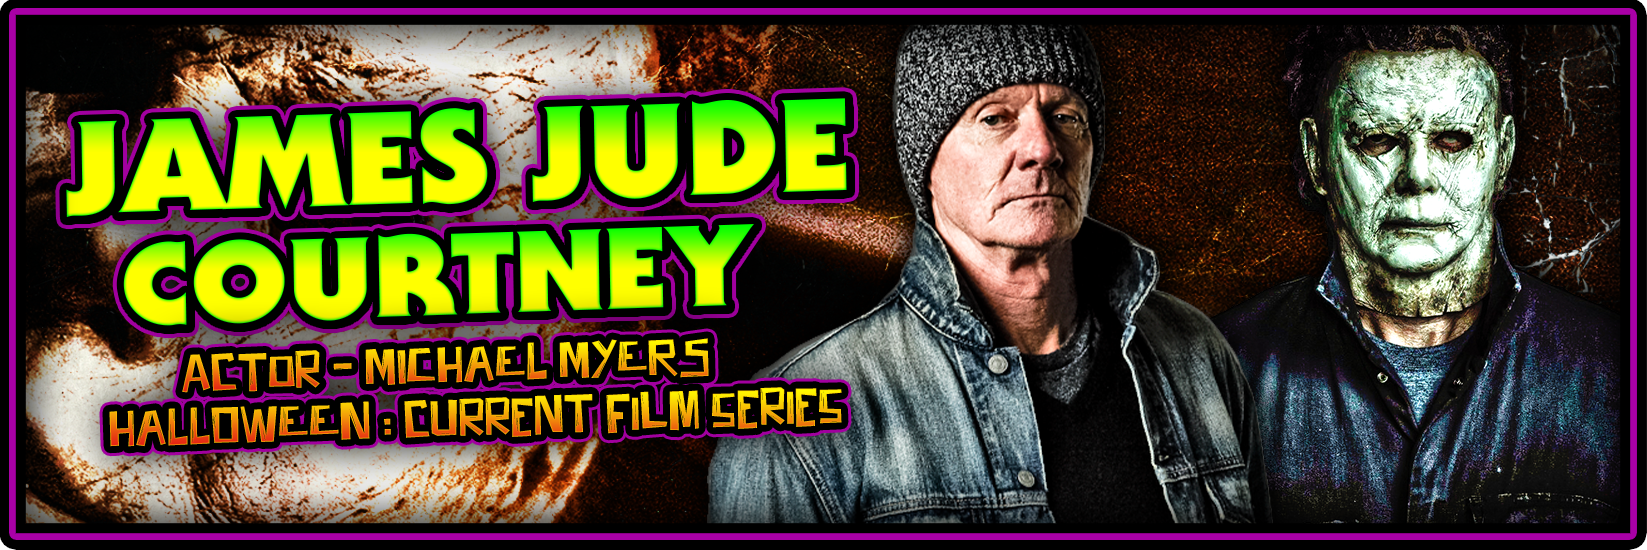 Astronomicon 3 James Jude Courtney Banner.png